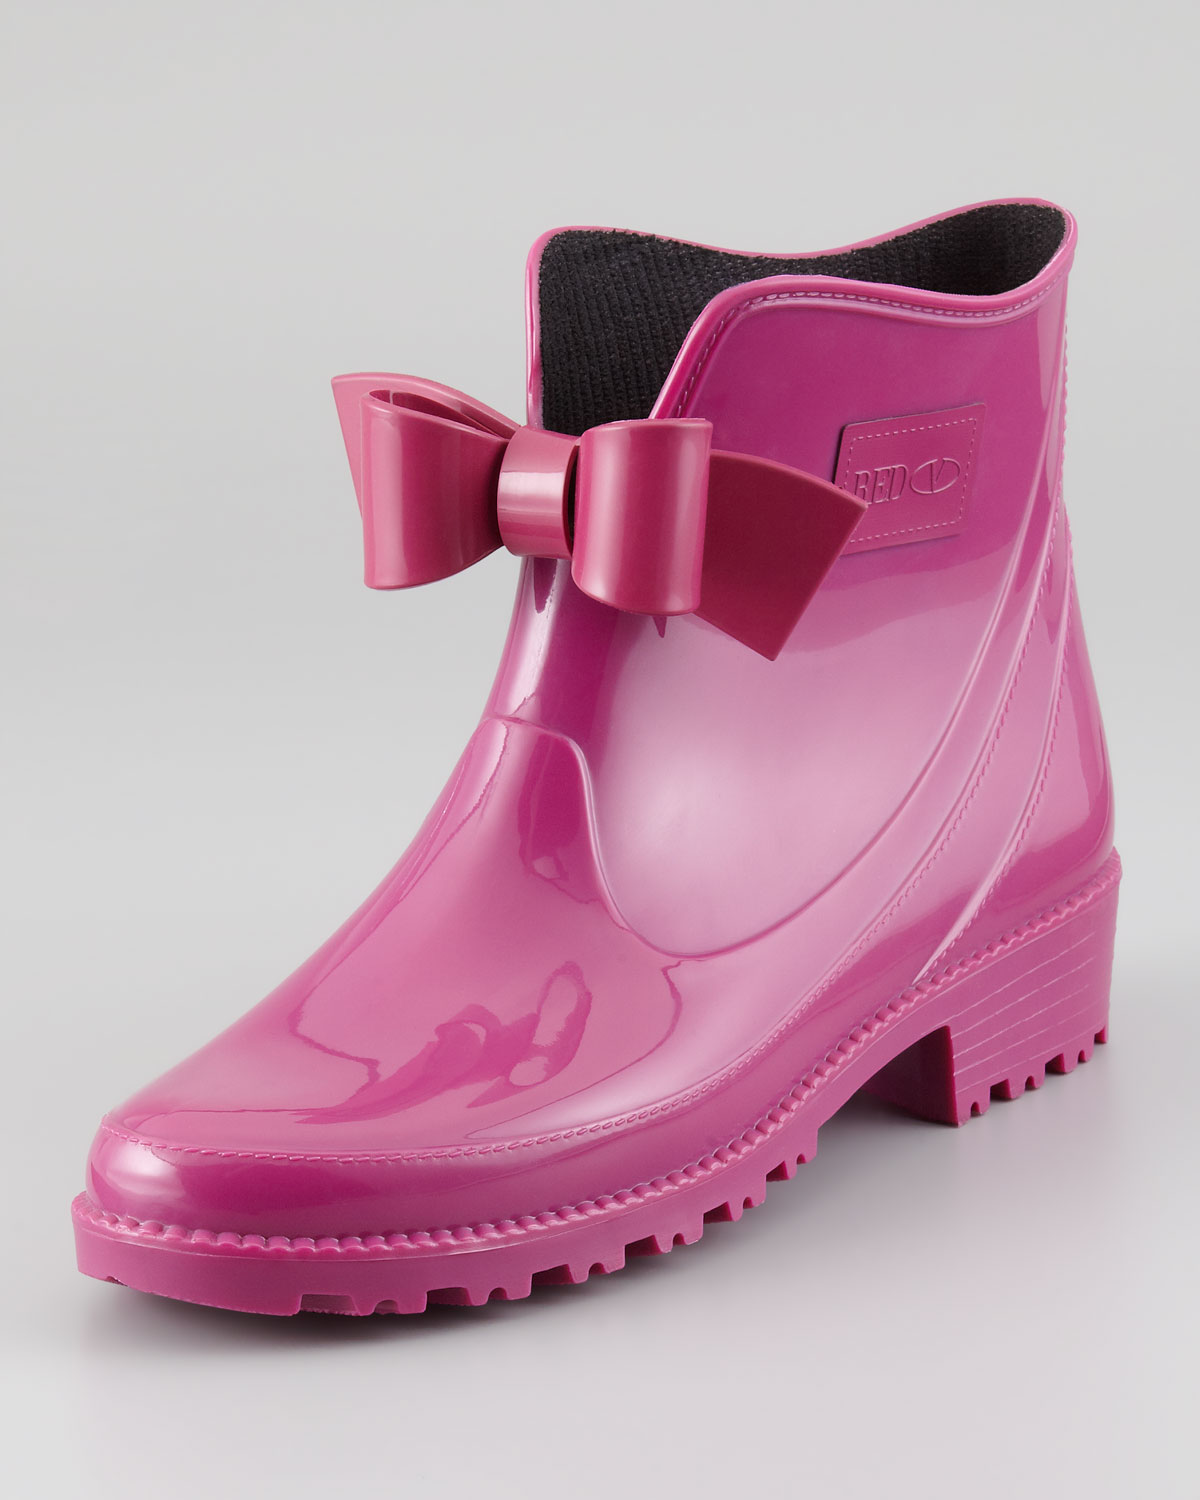 Red valentino Bowfront Short Rain Boot Raspberry in Pink | Lyst